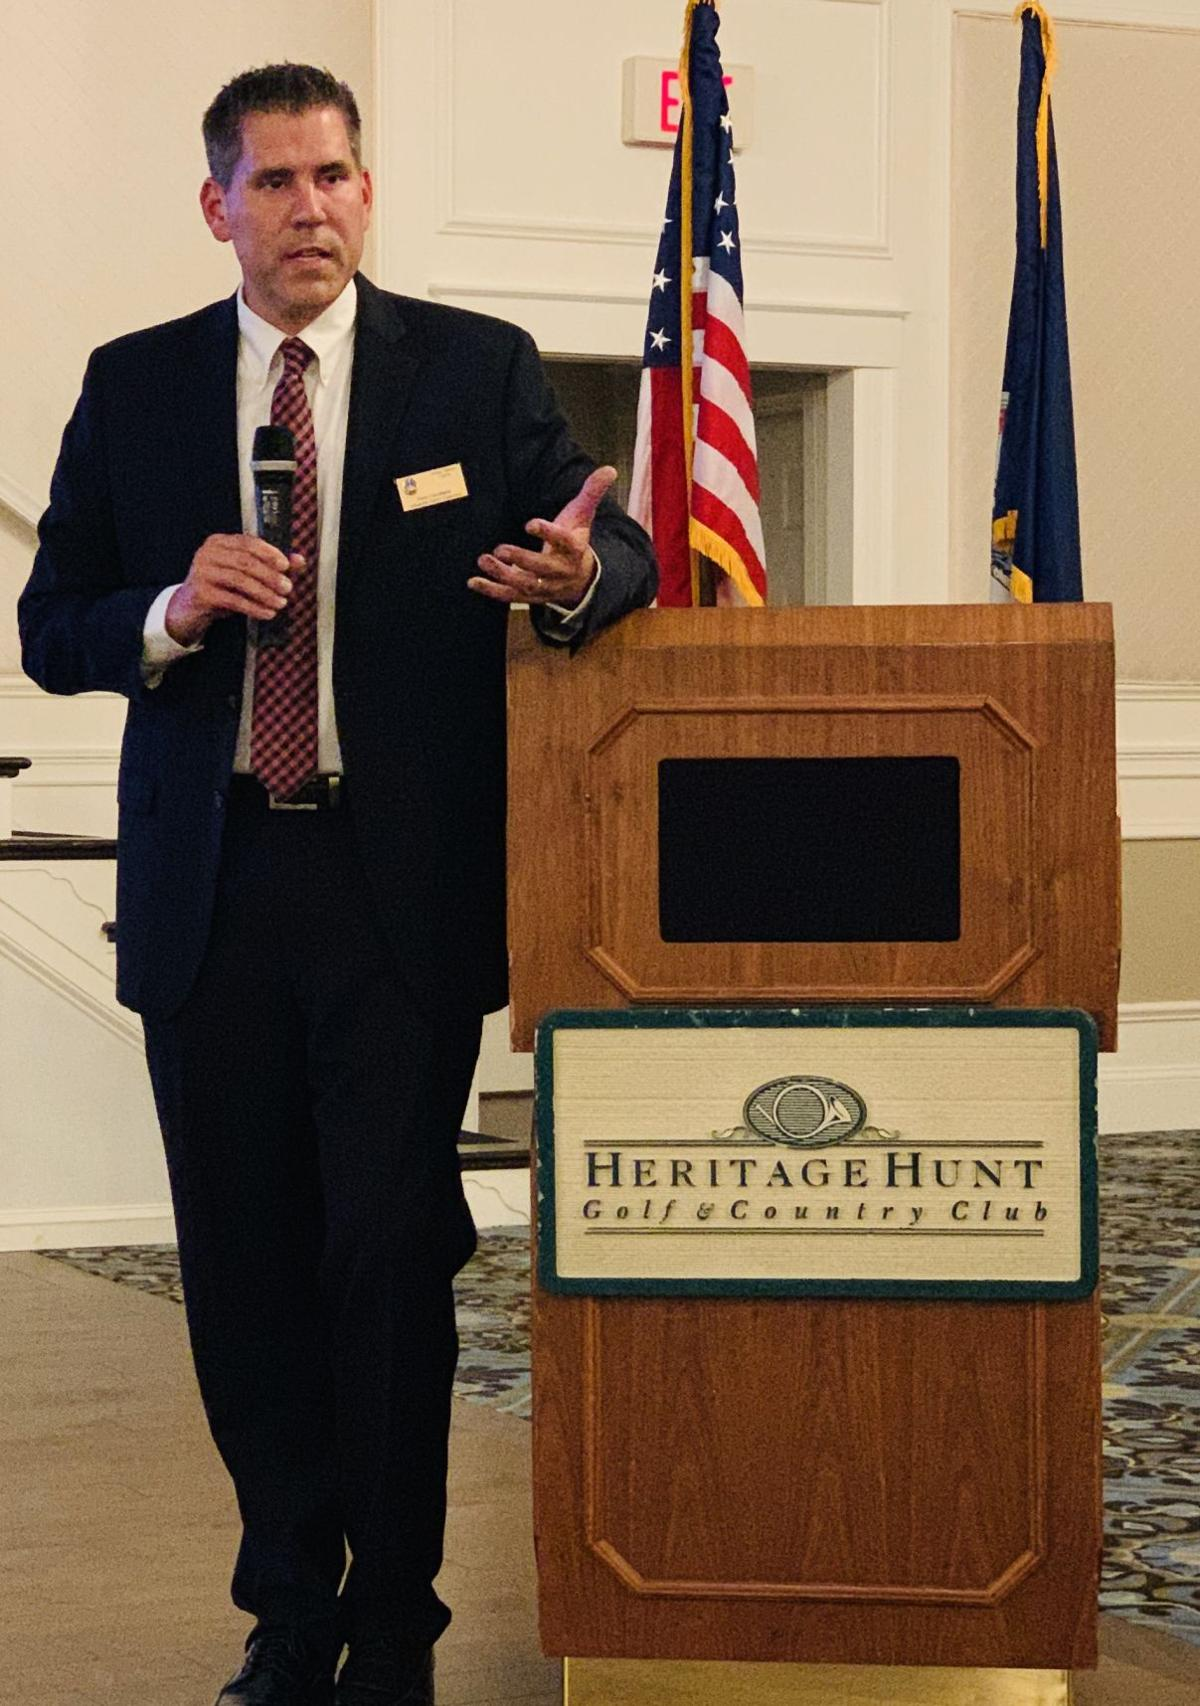 Pete Candland speaks about Tough Mudder at Heritage Hunt town hall meeting May 30, 2019